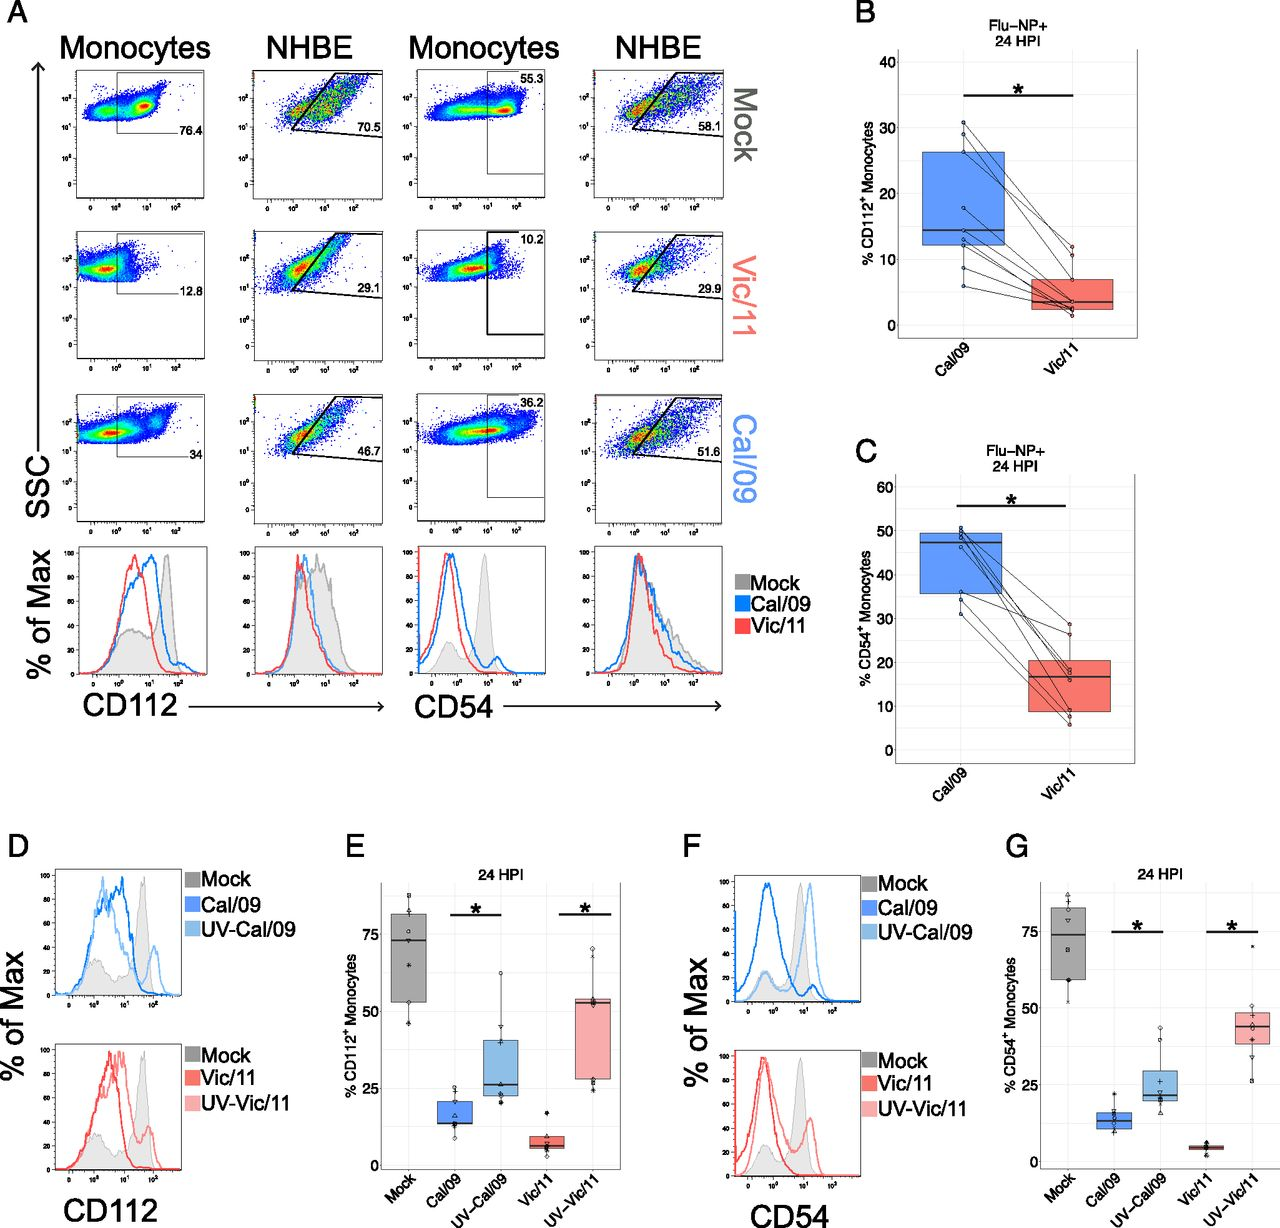 Differential Induction of IFN-α and Modulation of CD112 and CD54